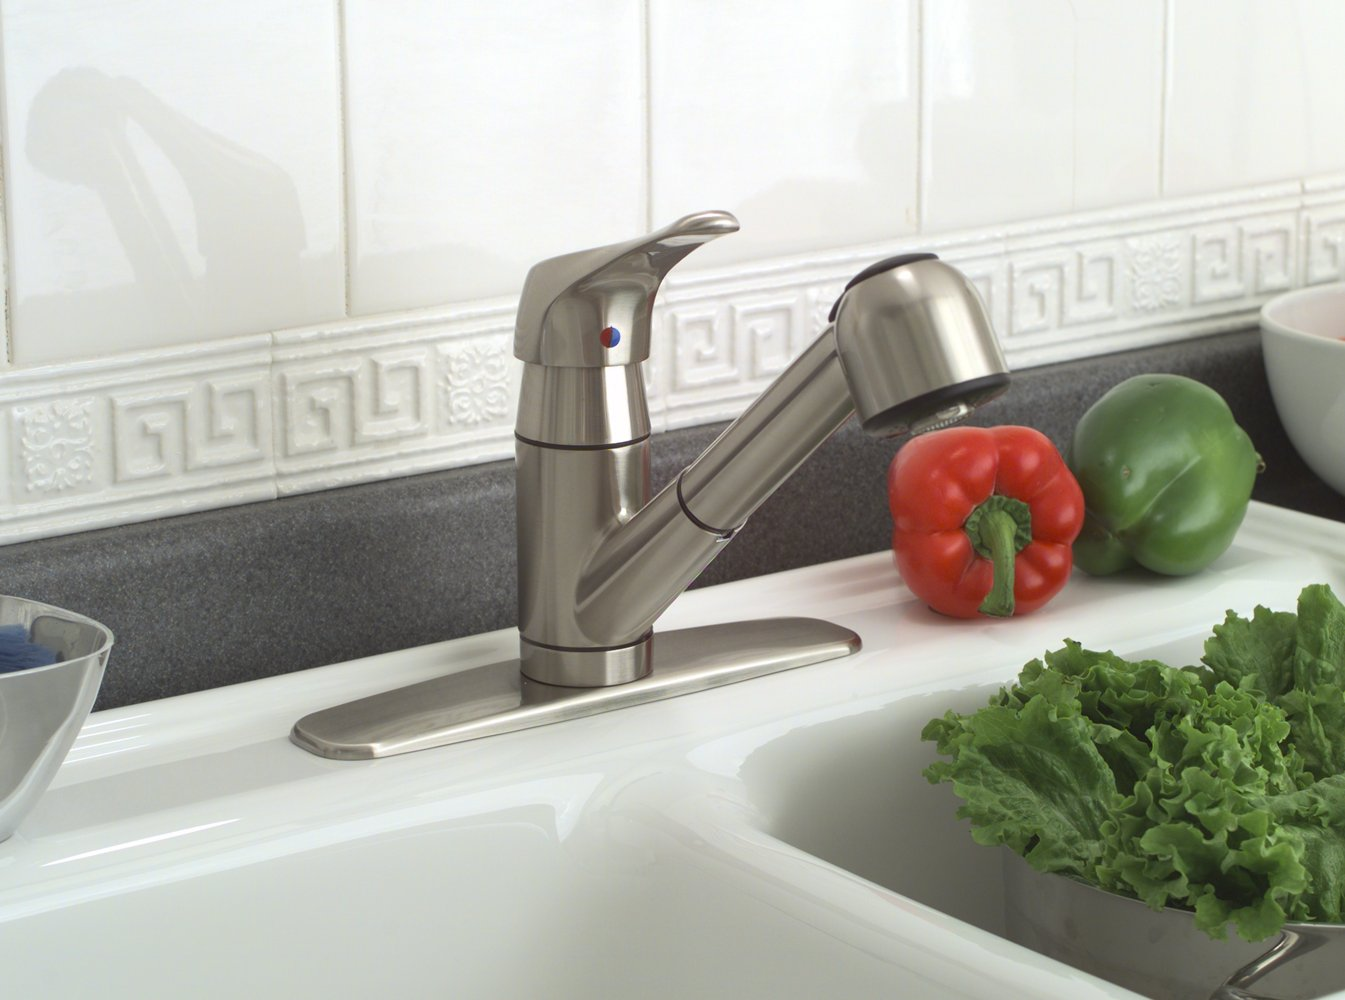 Premier 120161LF Sonoma Lead-Free Pull-Out Kitchen Faucet